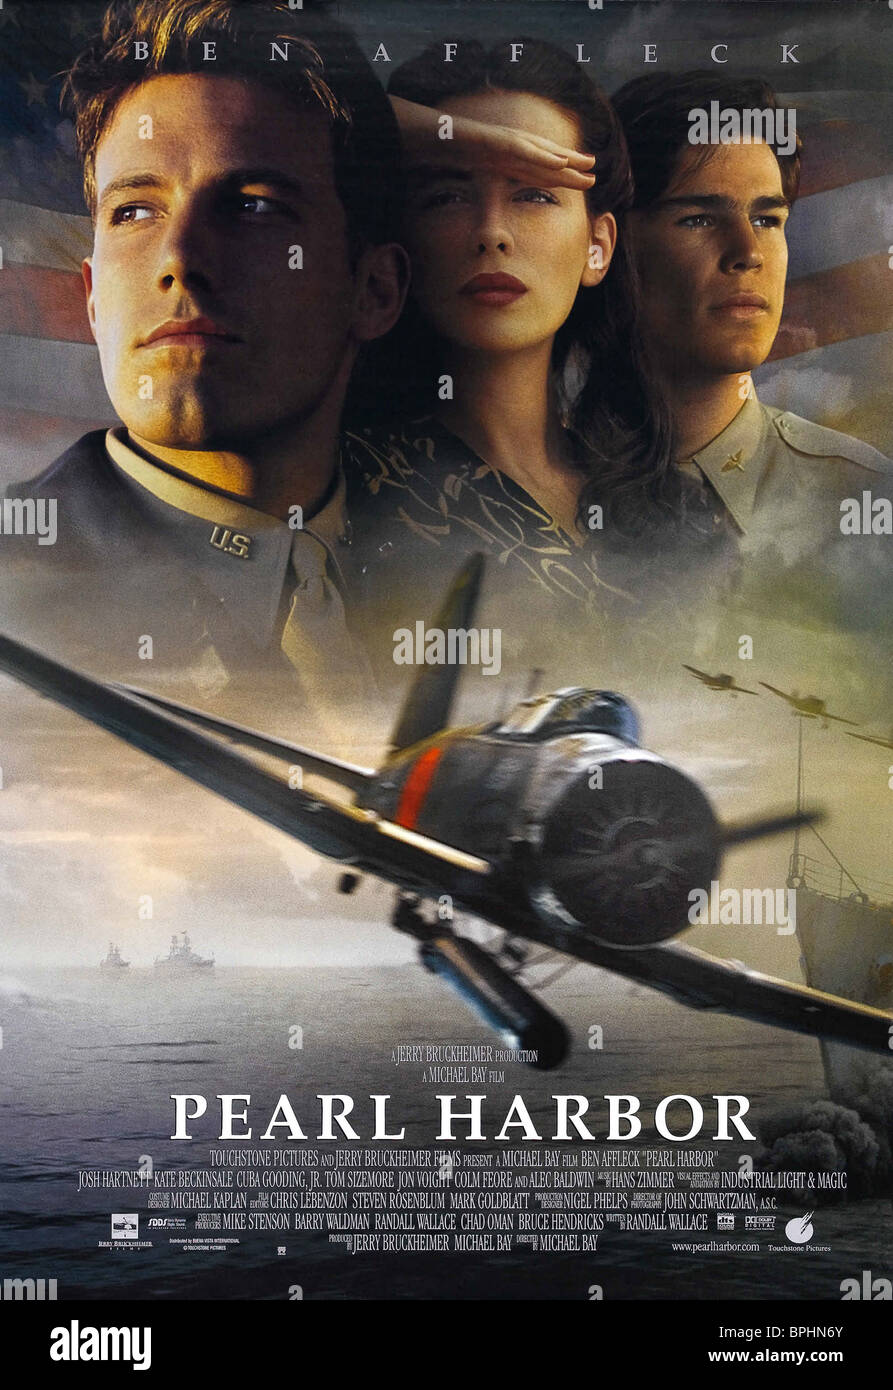 pearl harbour movie in tamil free download for mobile